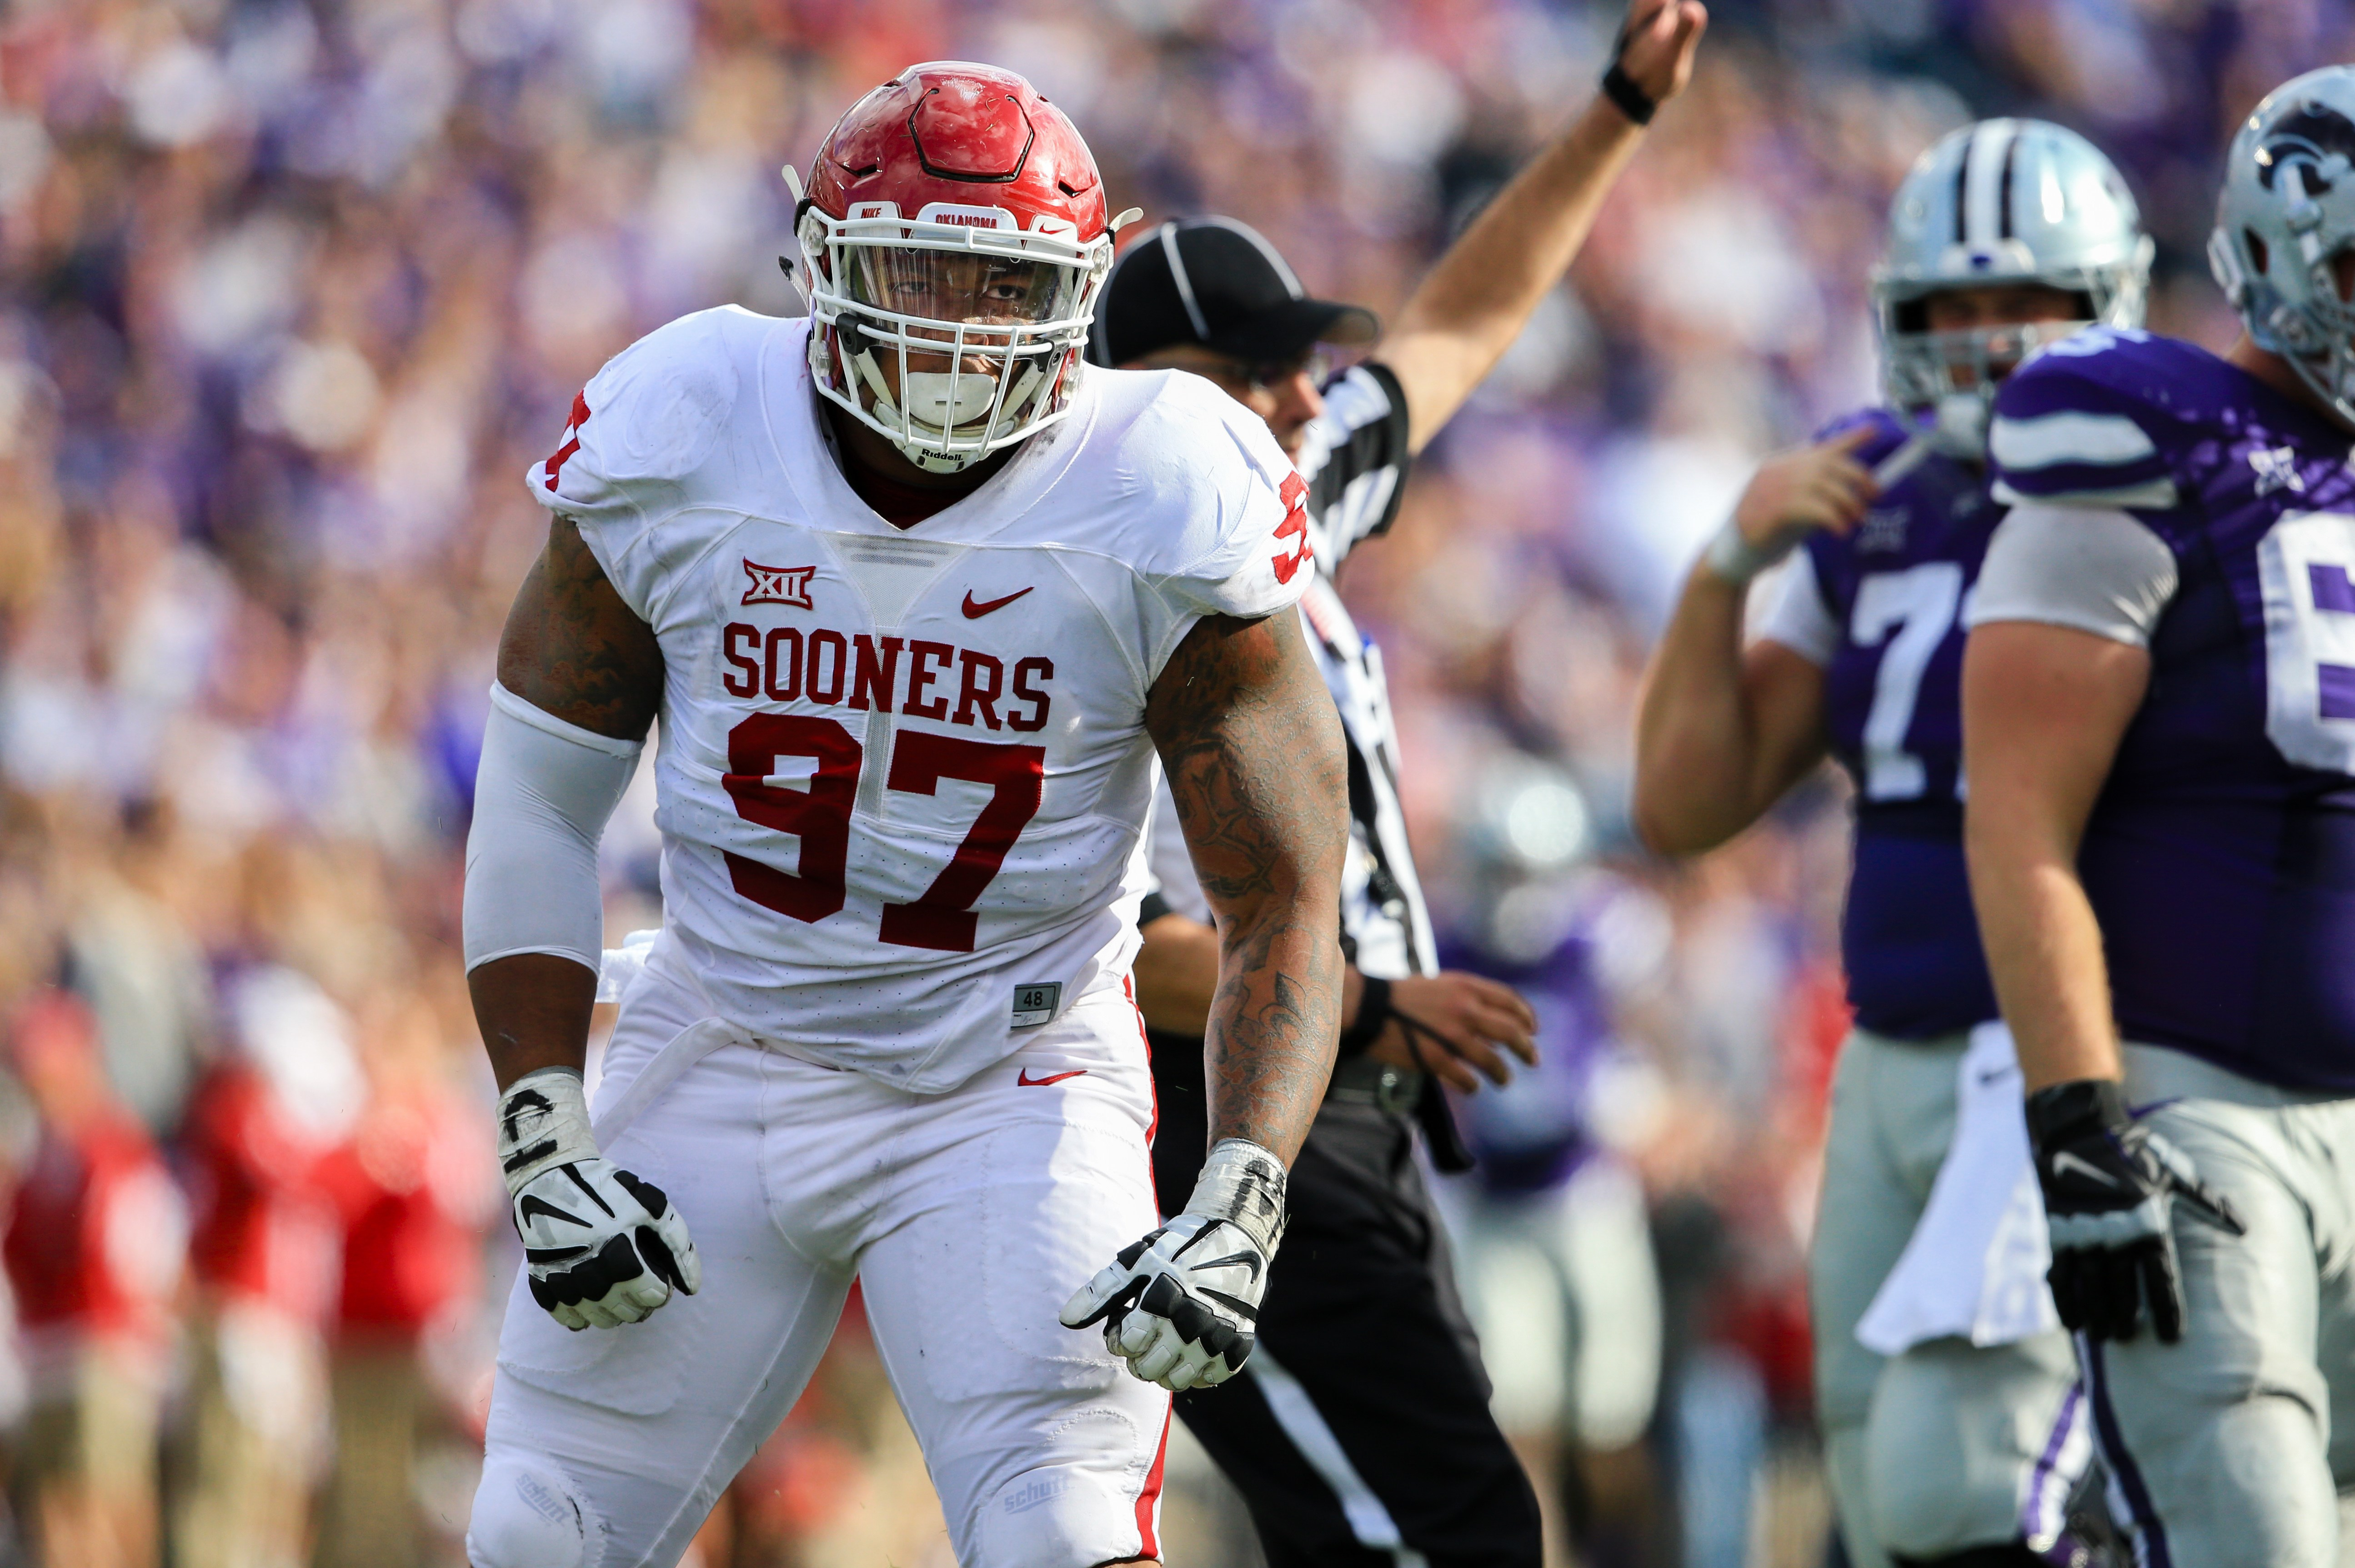 FILE - In this Oct. 17, 2015, file photo, Oklahoma defensive tackle Charles Walker (97) celebrates a tackle during the first half of an NCAA college football game against Kansas State in Manhattan, Kan. Ohio State coach Urban Myer admittedly worries about